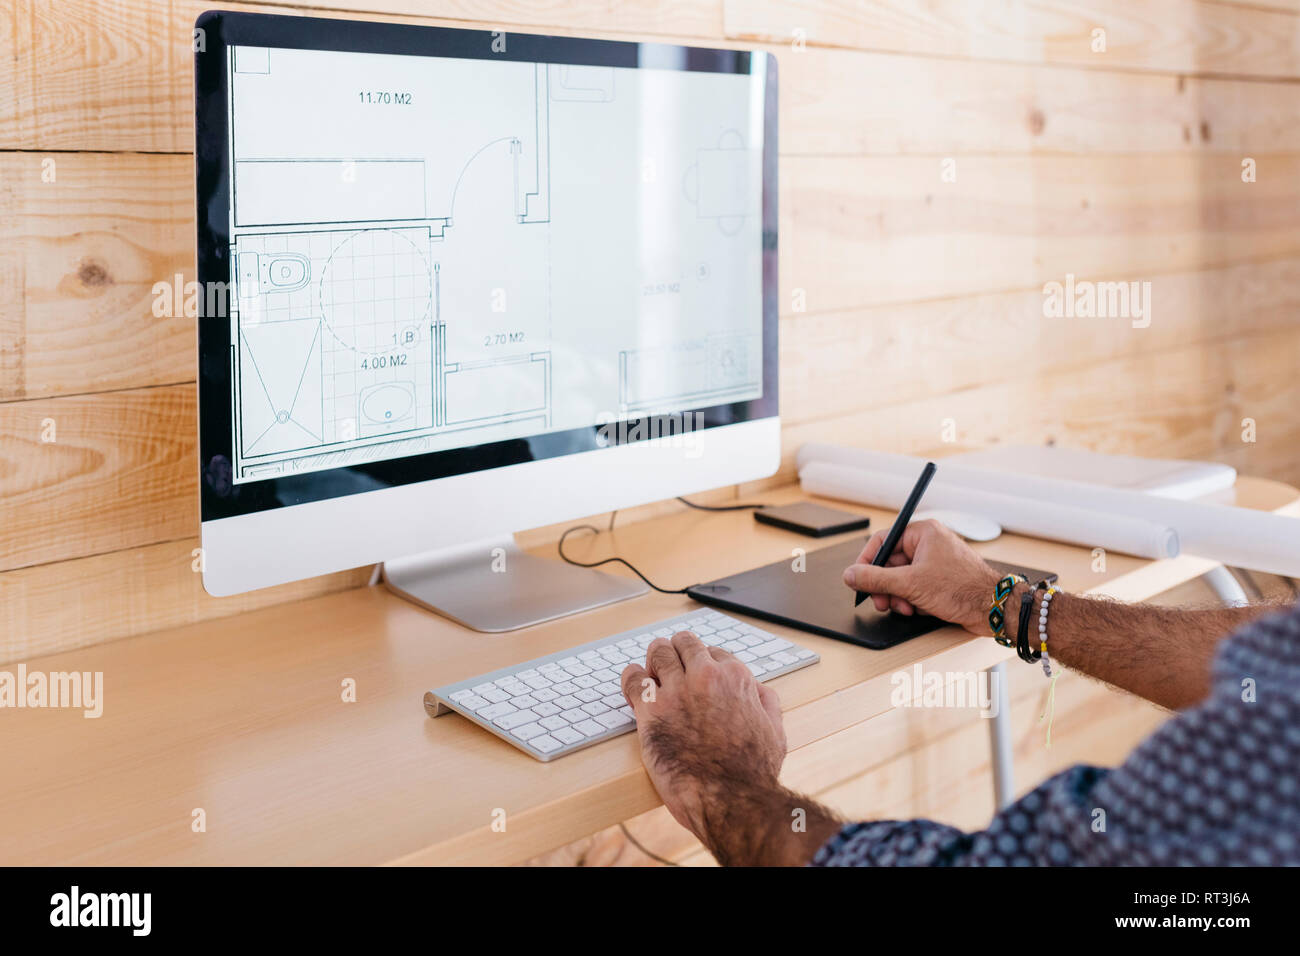 Close-up of man working on floor plan at home using the computer and graphics tablet - Stock Image